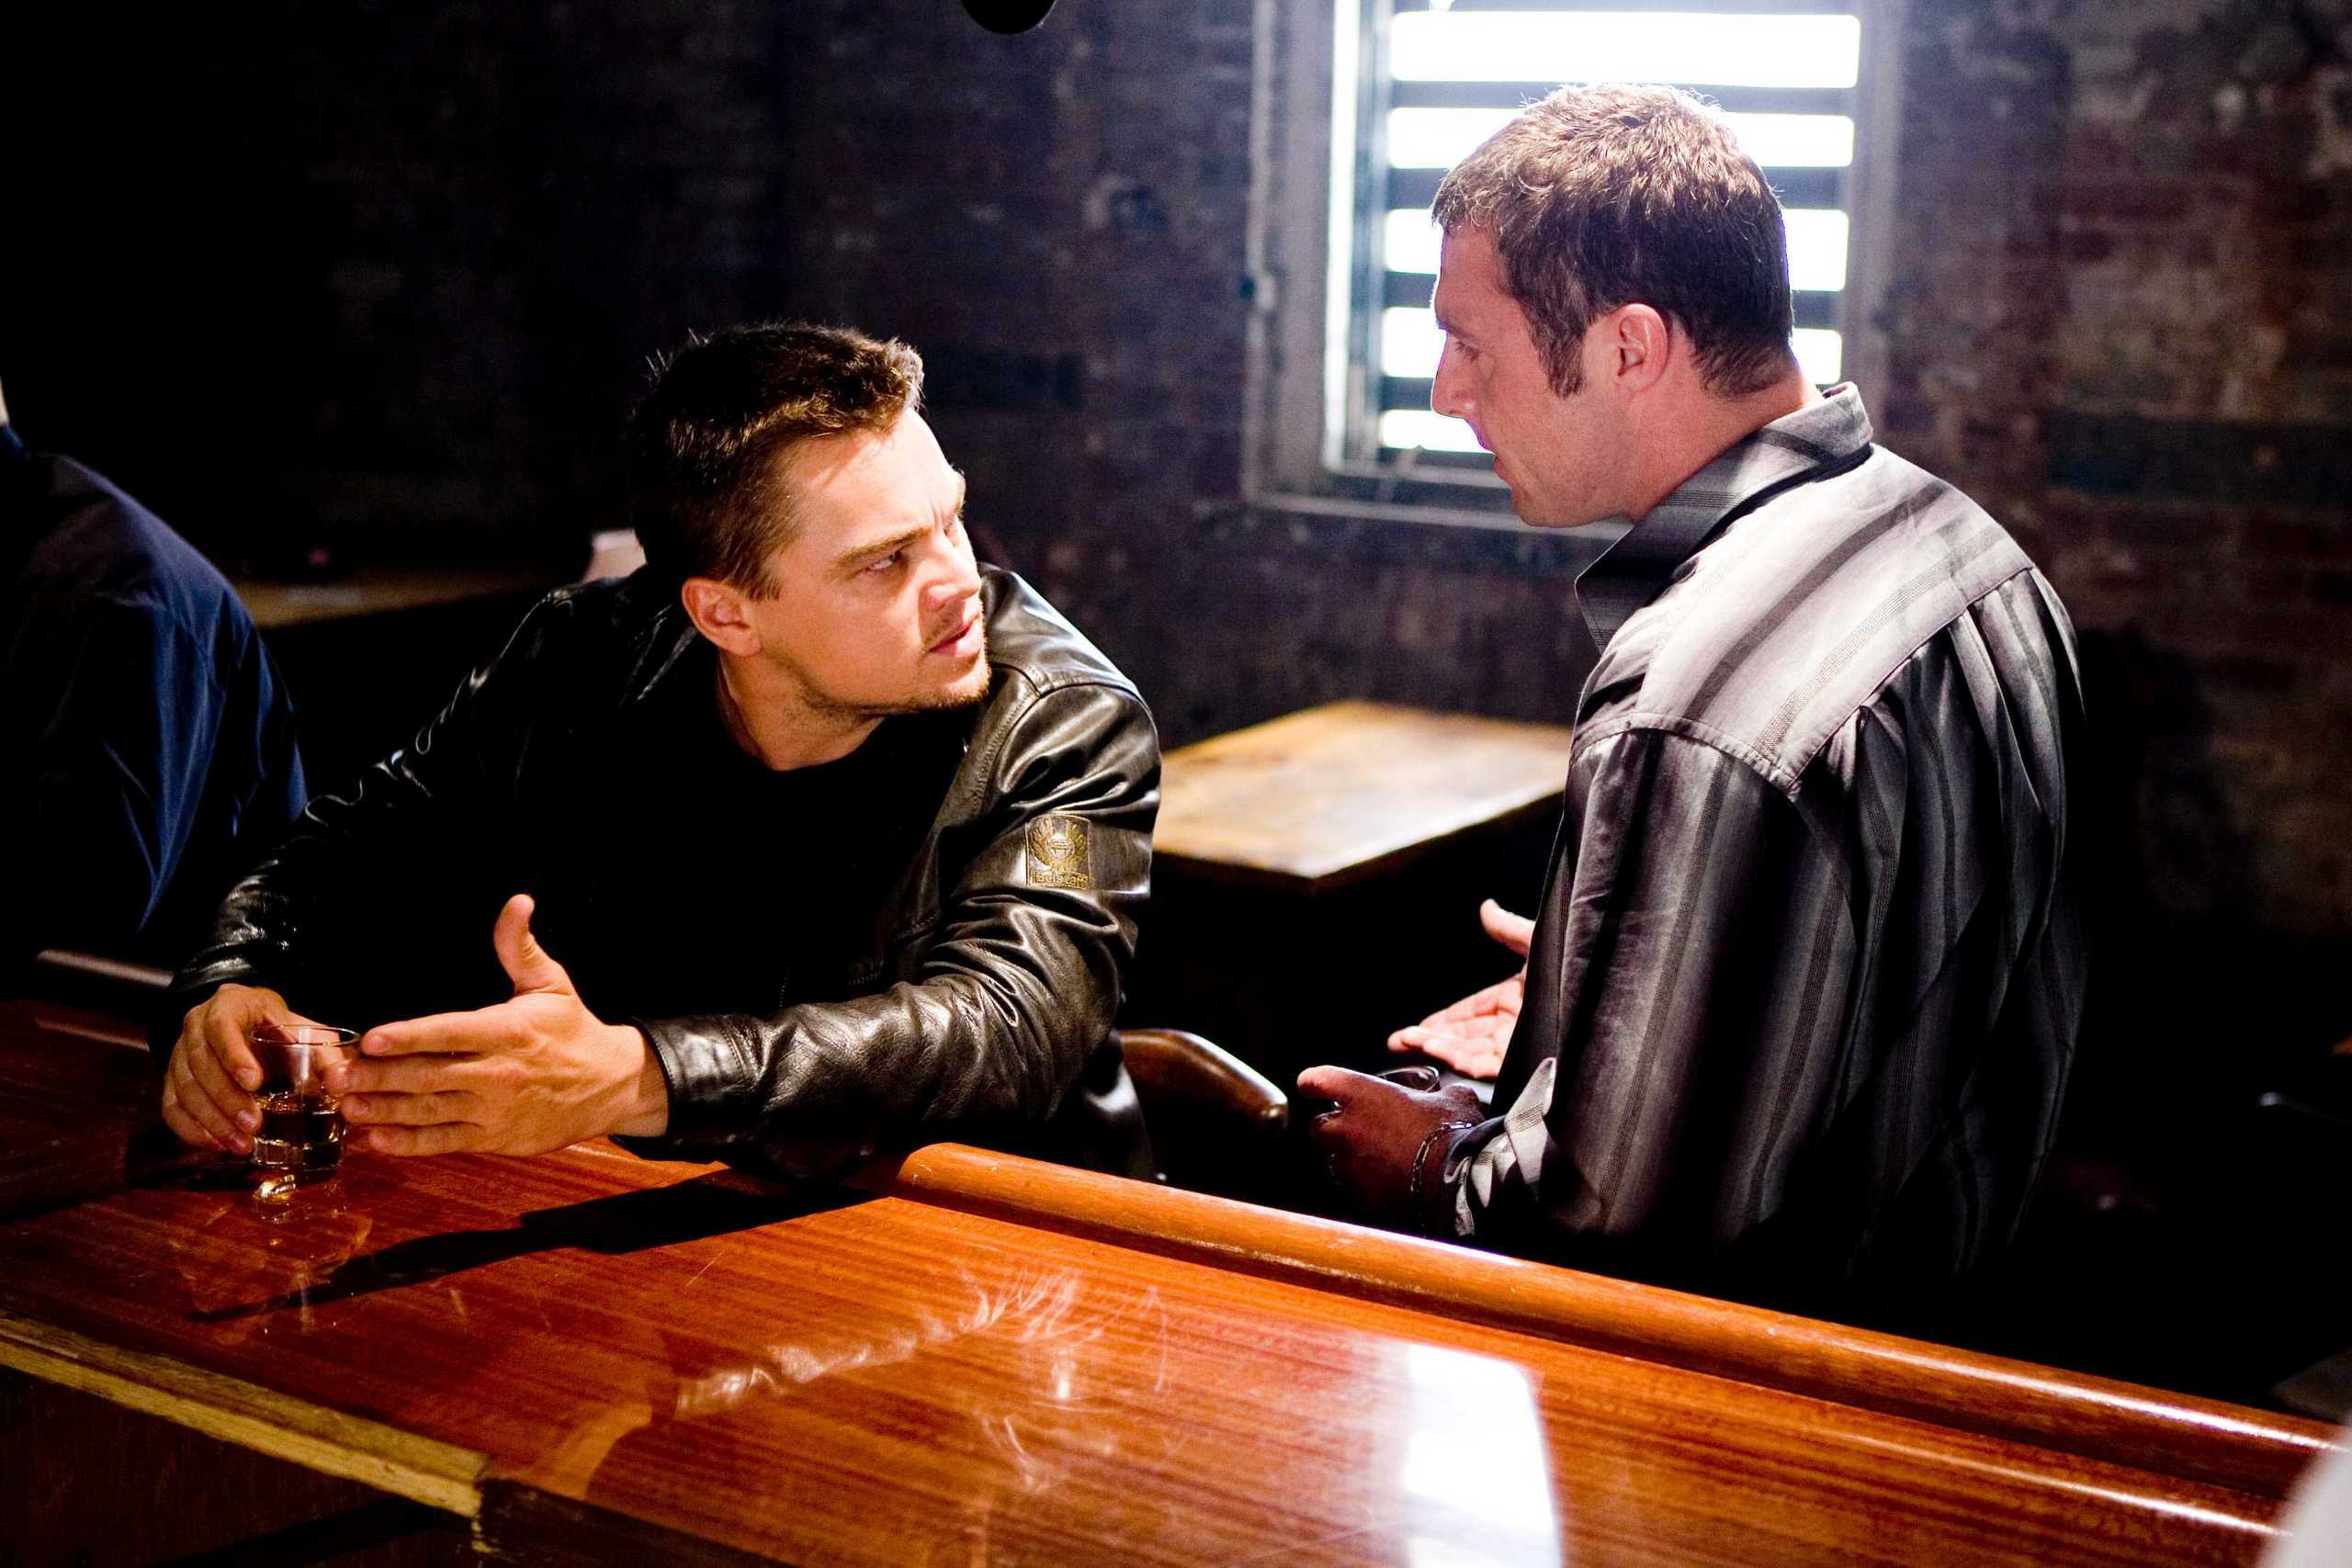 https://i0.wp.com/images2.fanpop.com/image/photos/8600000/The-Departed-leonardo-dicaprio-8607360-2560-1707.jpg